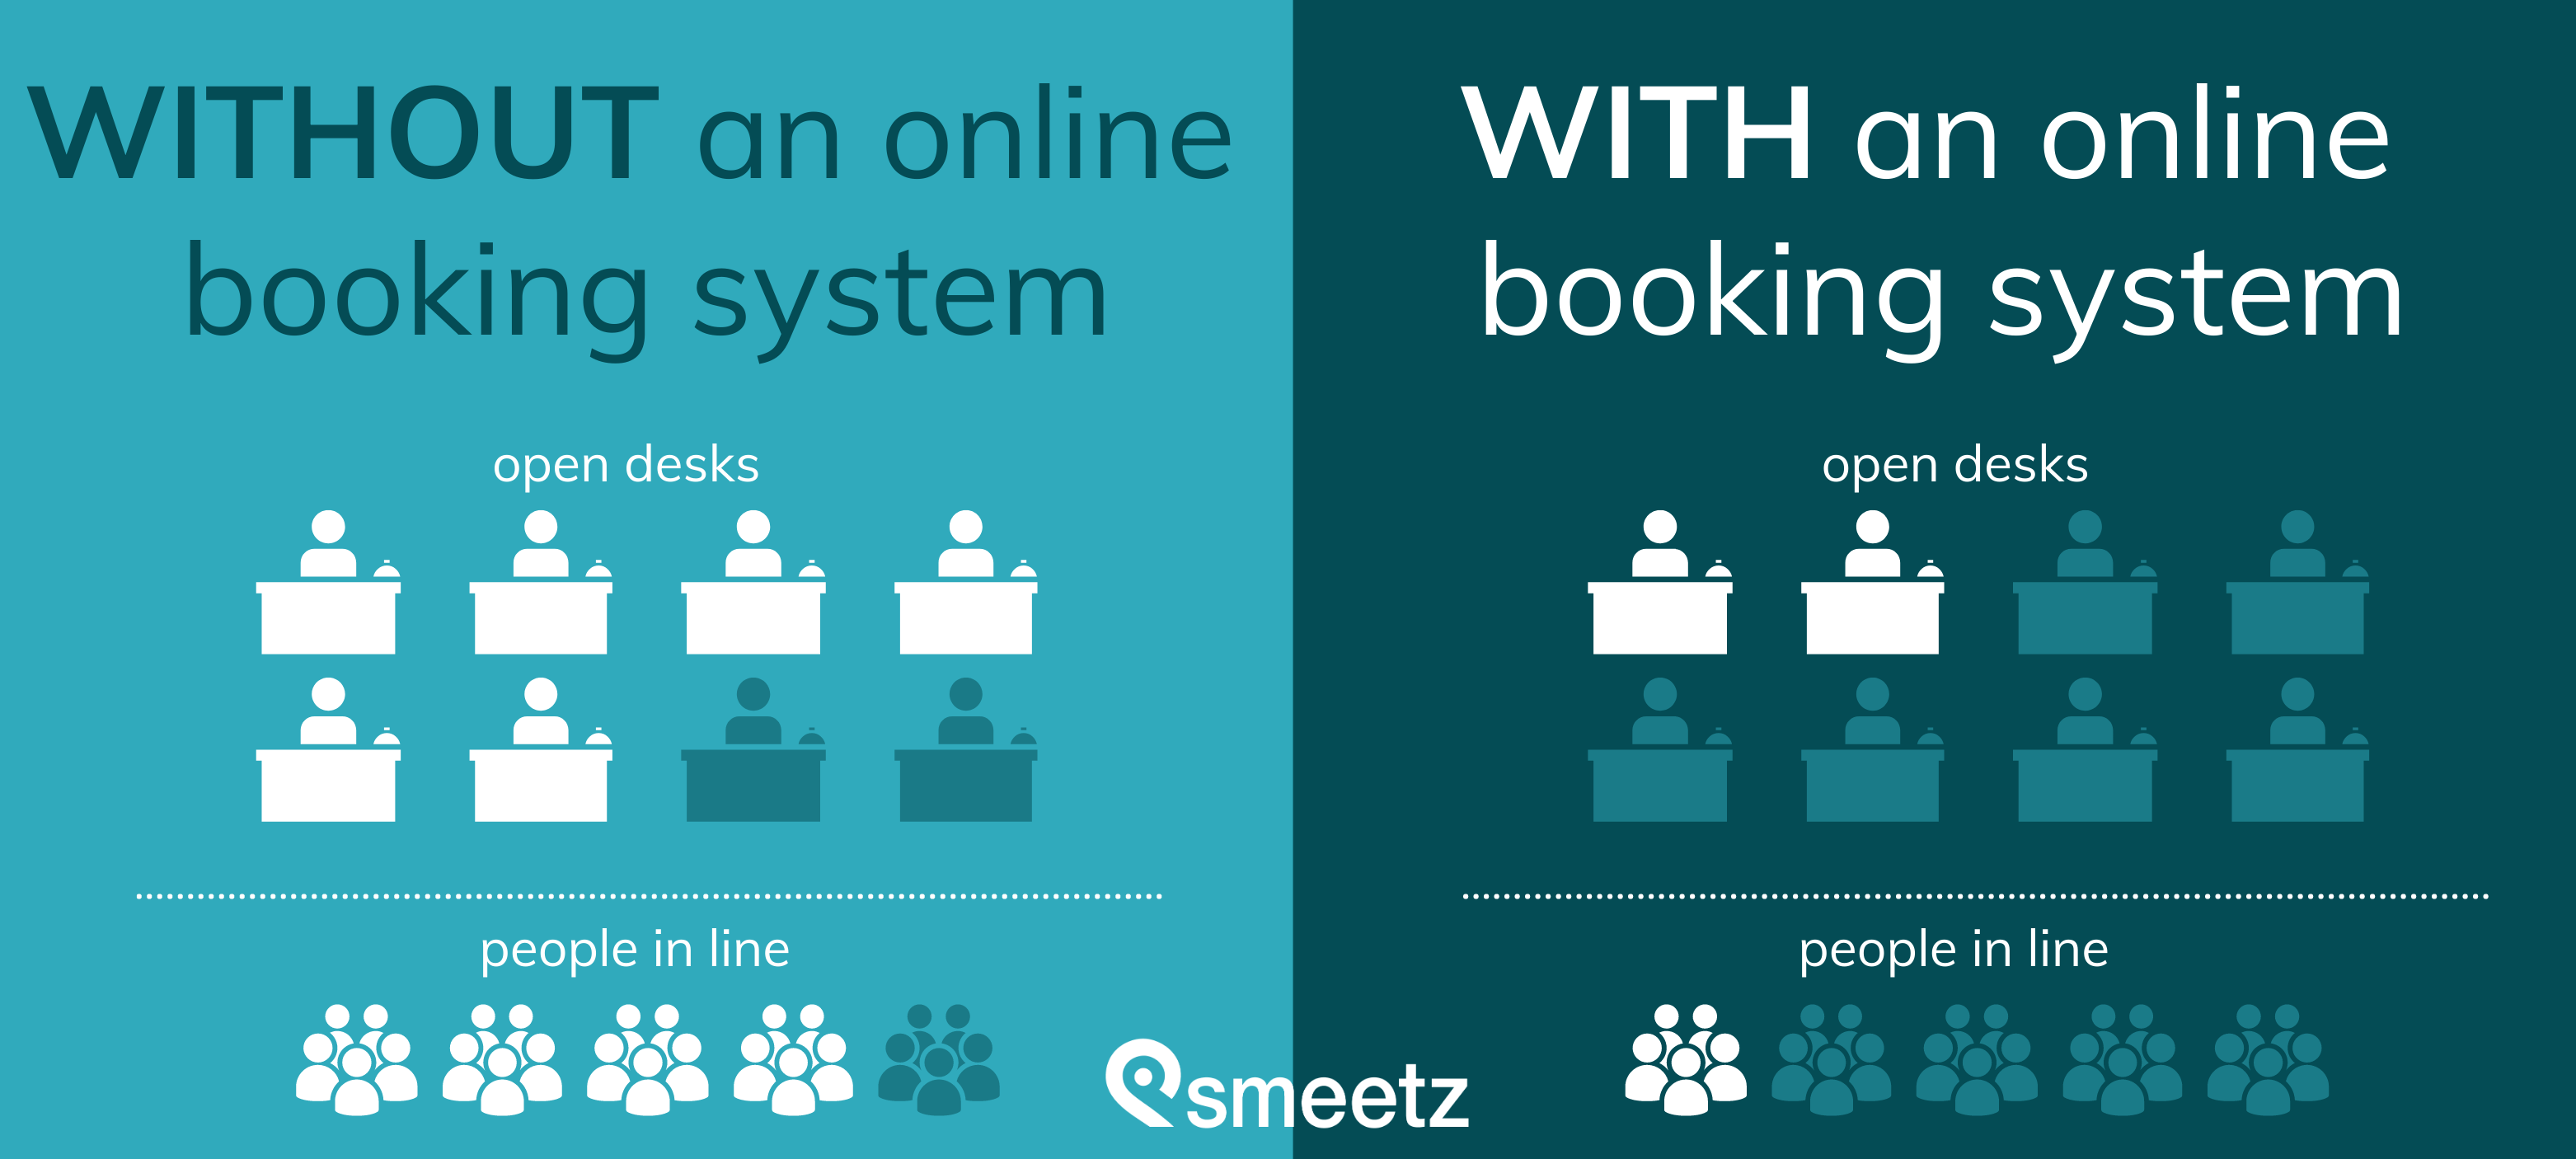 stats online booking